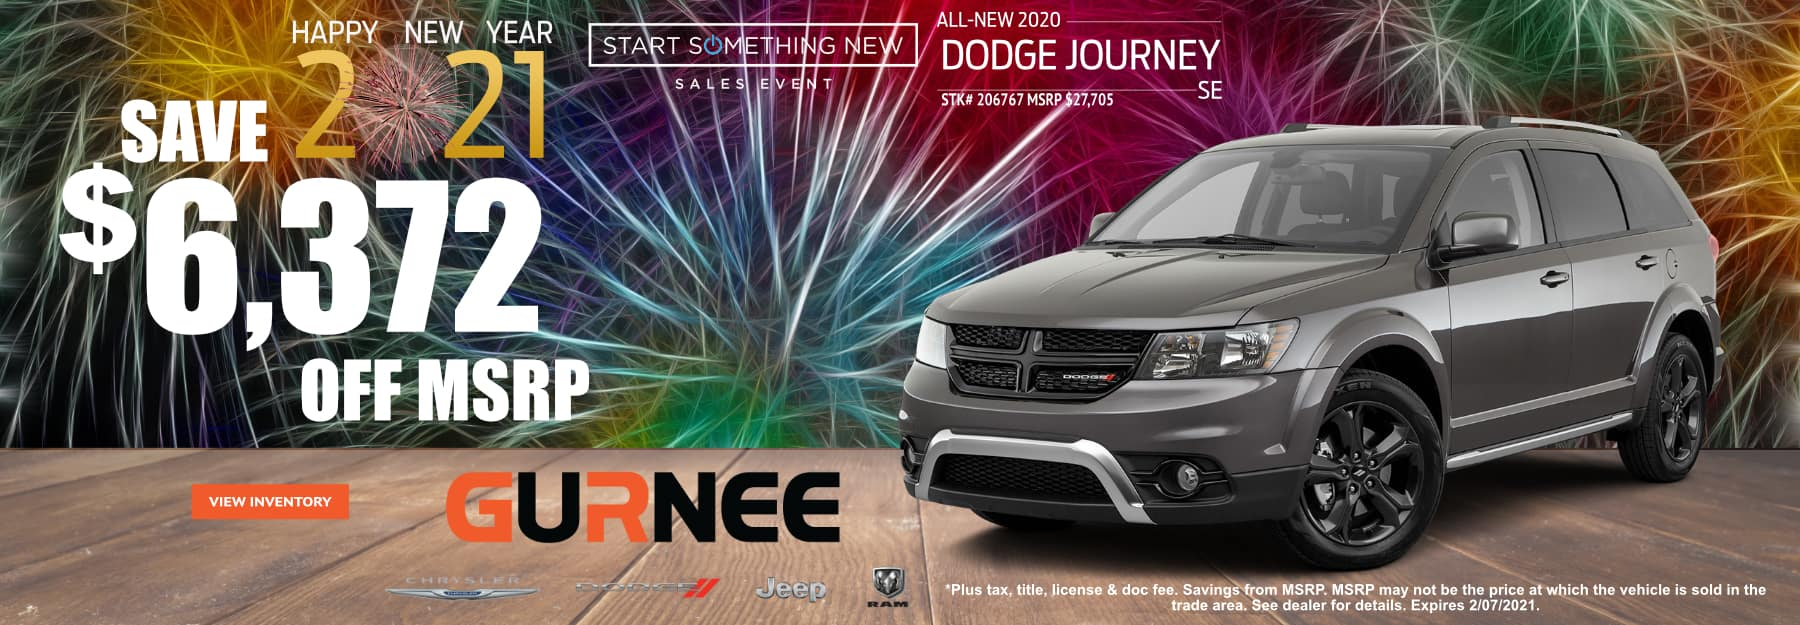 January-2021 DODGE_JOURNEY_GURNEE